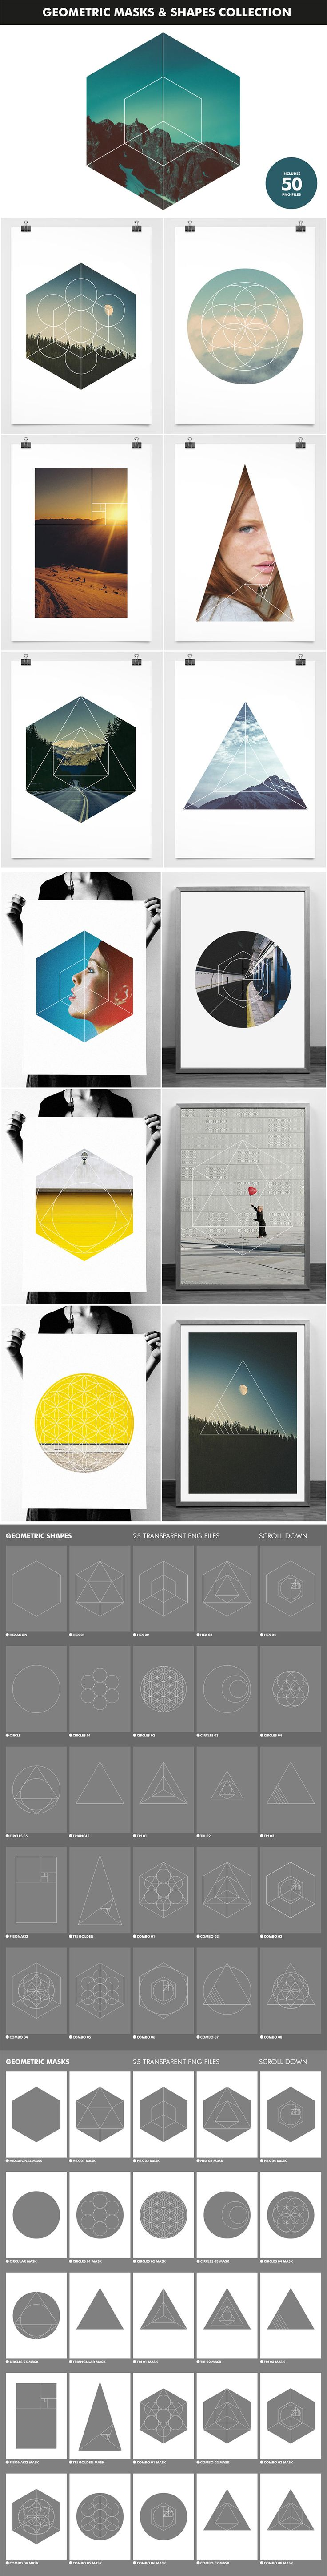 Geometric Masks and Shapes Collection